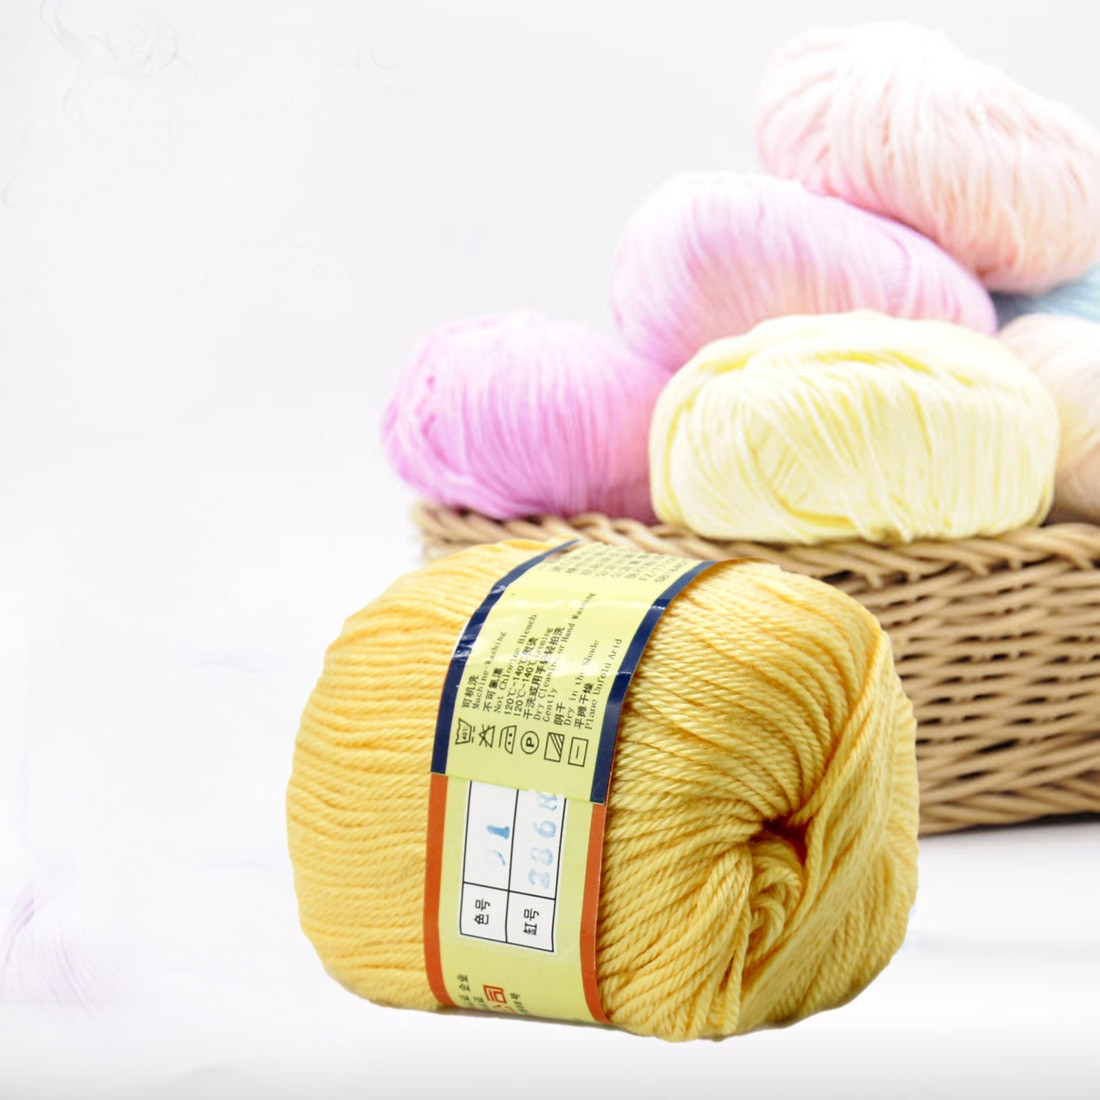 Cheap Yarn New 1pc 50g Cotton Knitting Yarn Crochet Yarn for Knitting Of Amazing 40 Pics Cheap Yarn